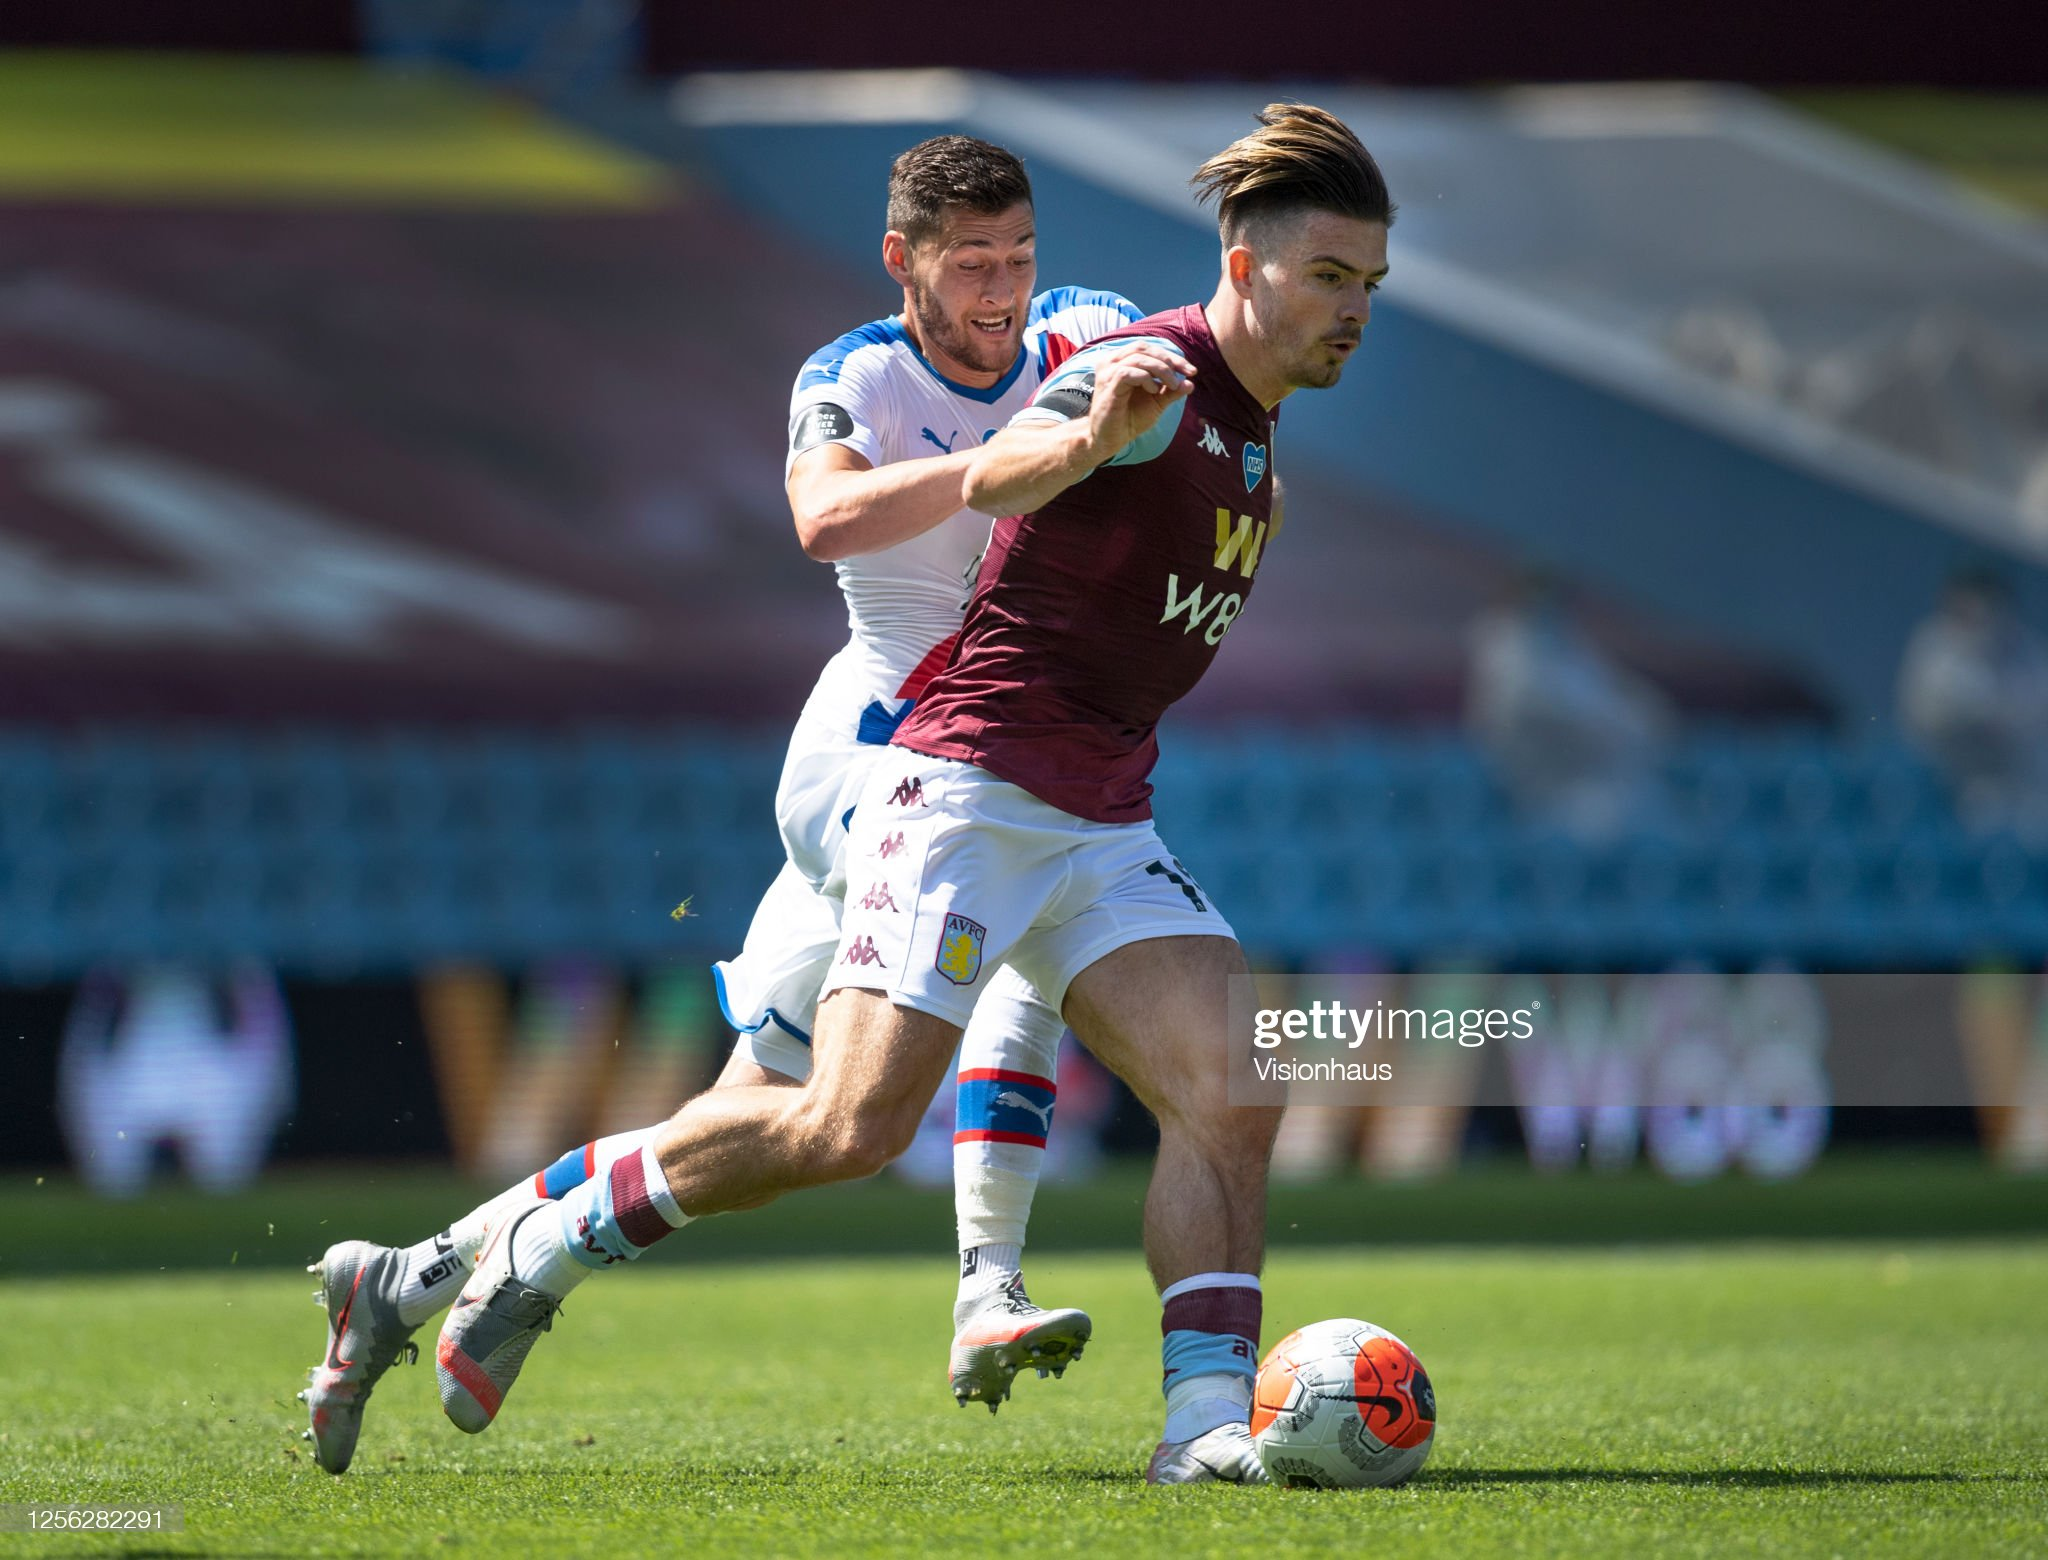 Aston Villa vs Crystal Palace Preview, prediction and odds